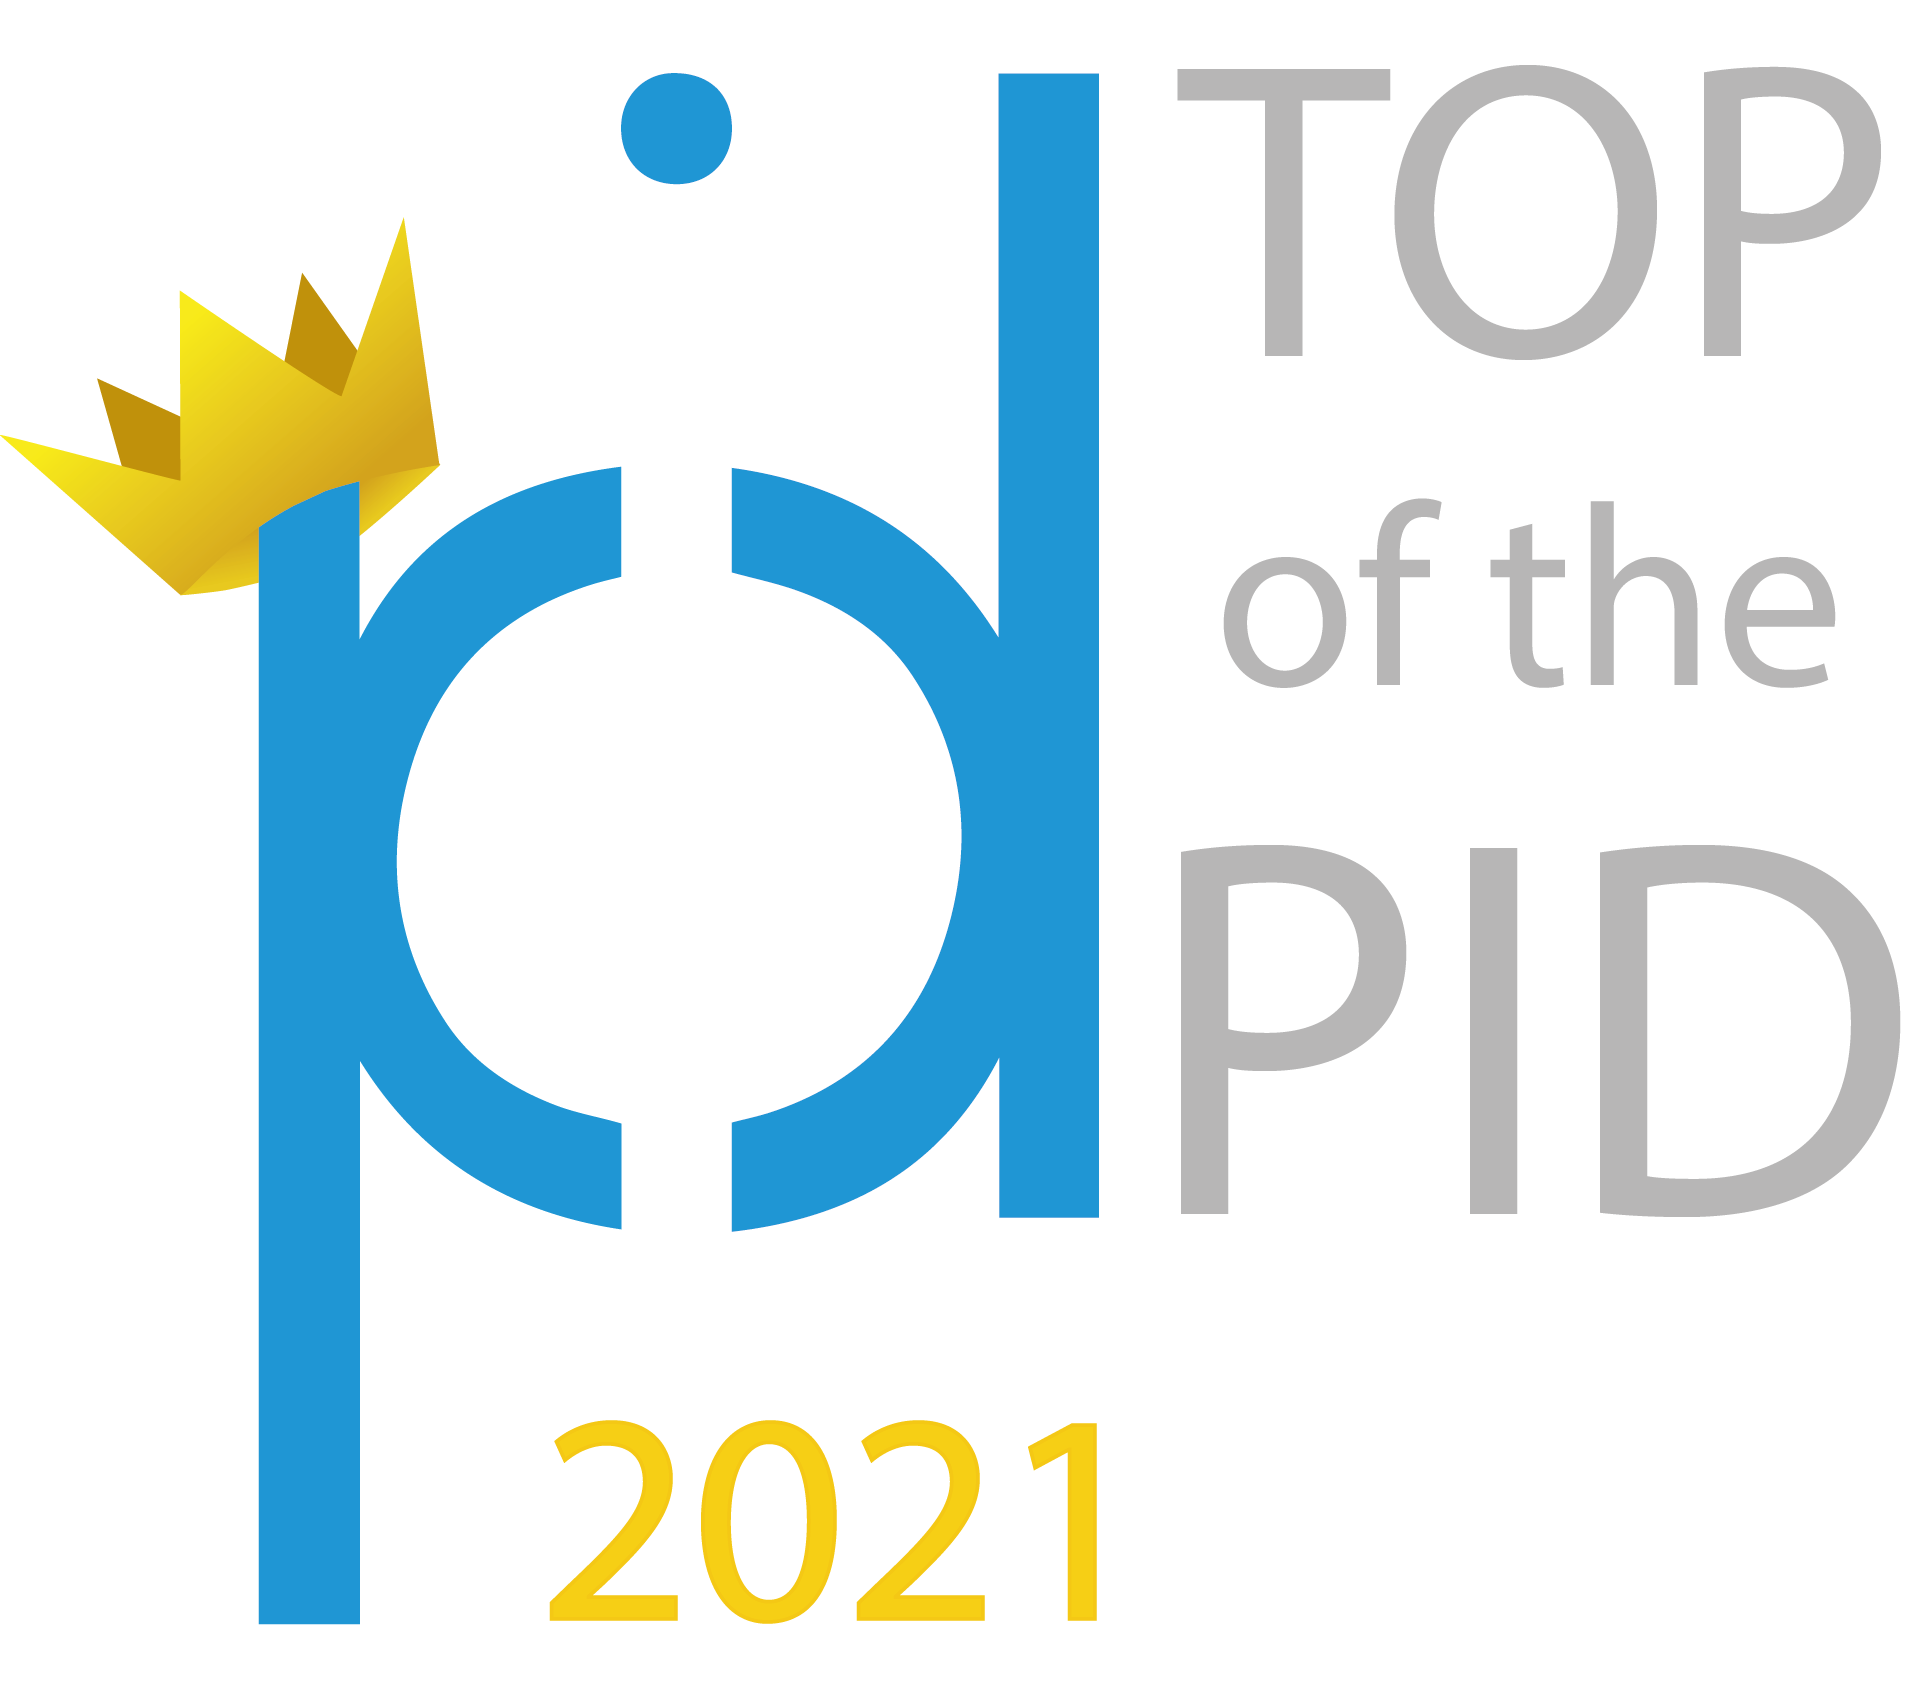 Top of the PID 2021